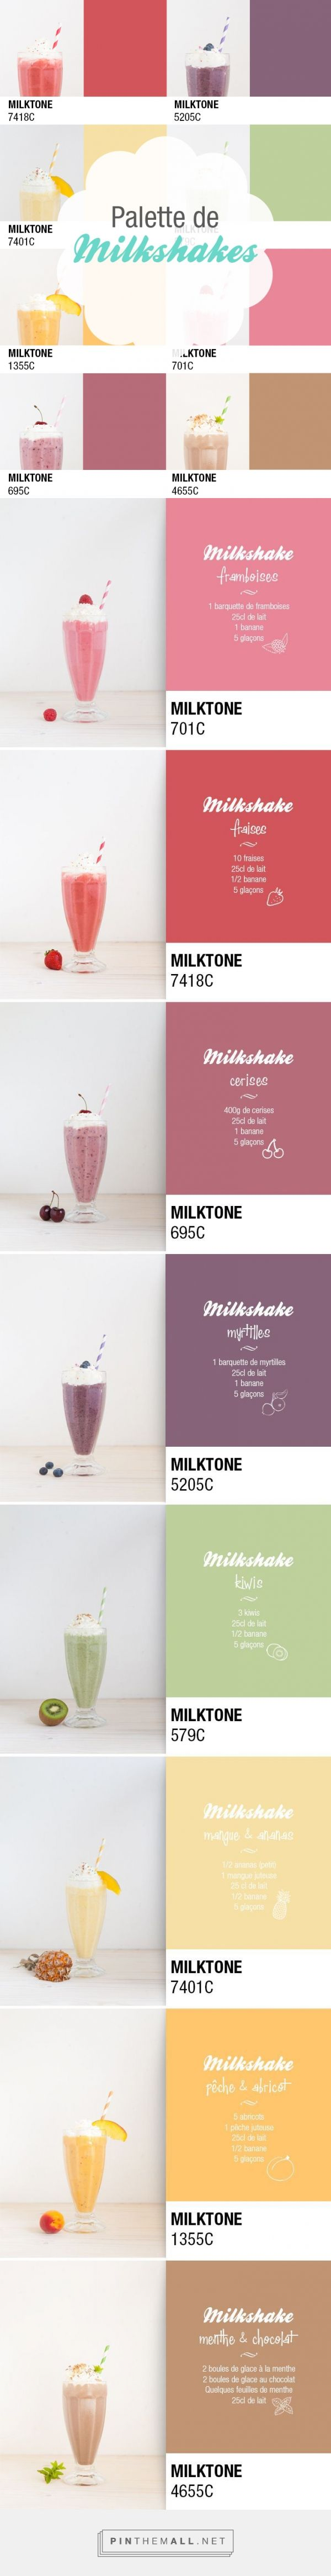 One milkshake a day via Pop and Soda. Ma palette de vitamines curated by Packaging Diva PD. This really isn't packaging but I couldn't resist these smoothies in Pantone colors including the recipe too.